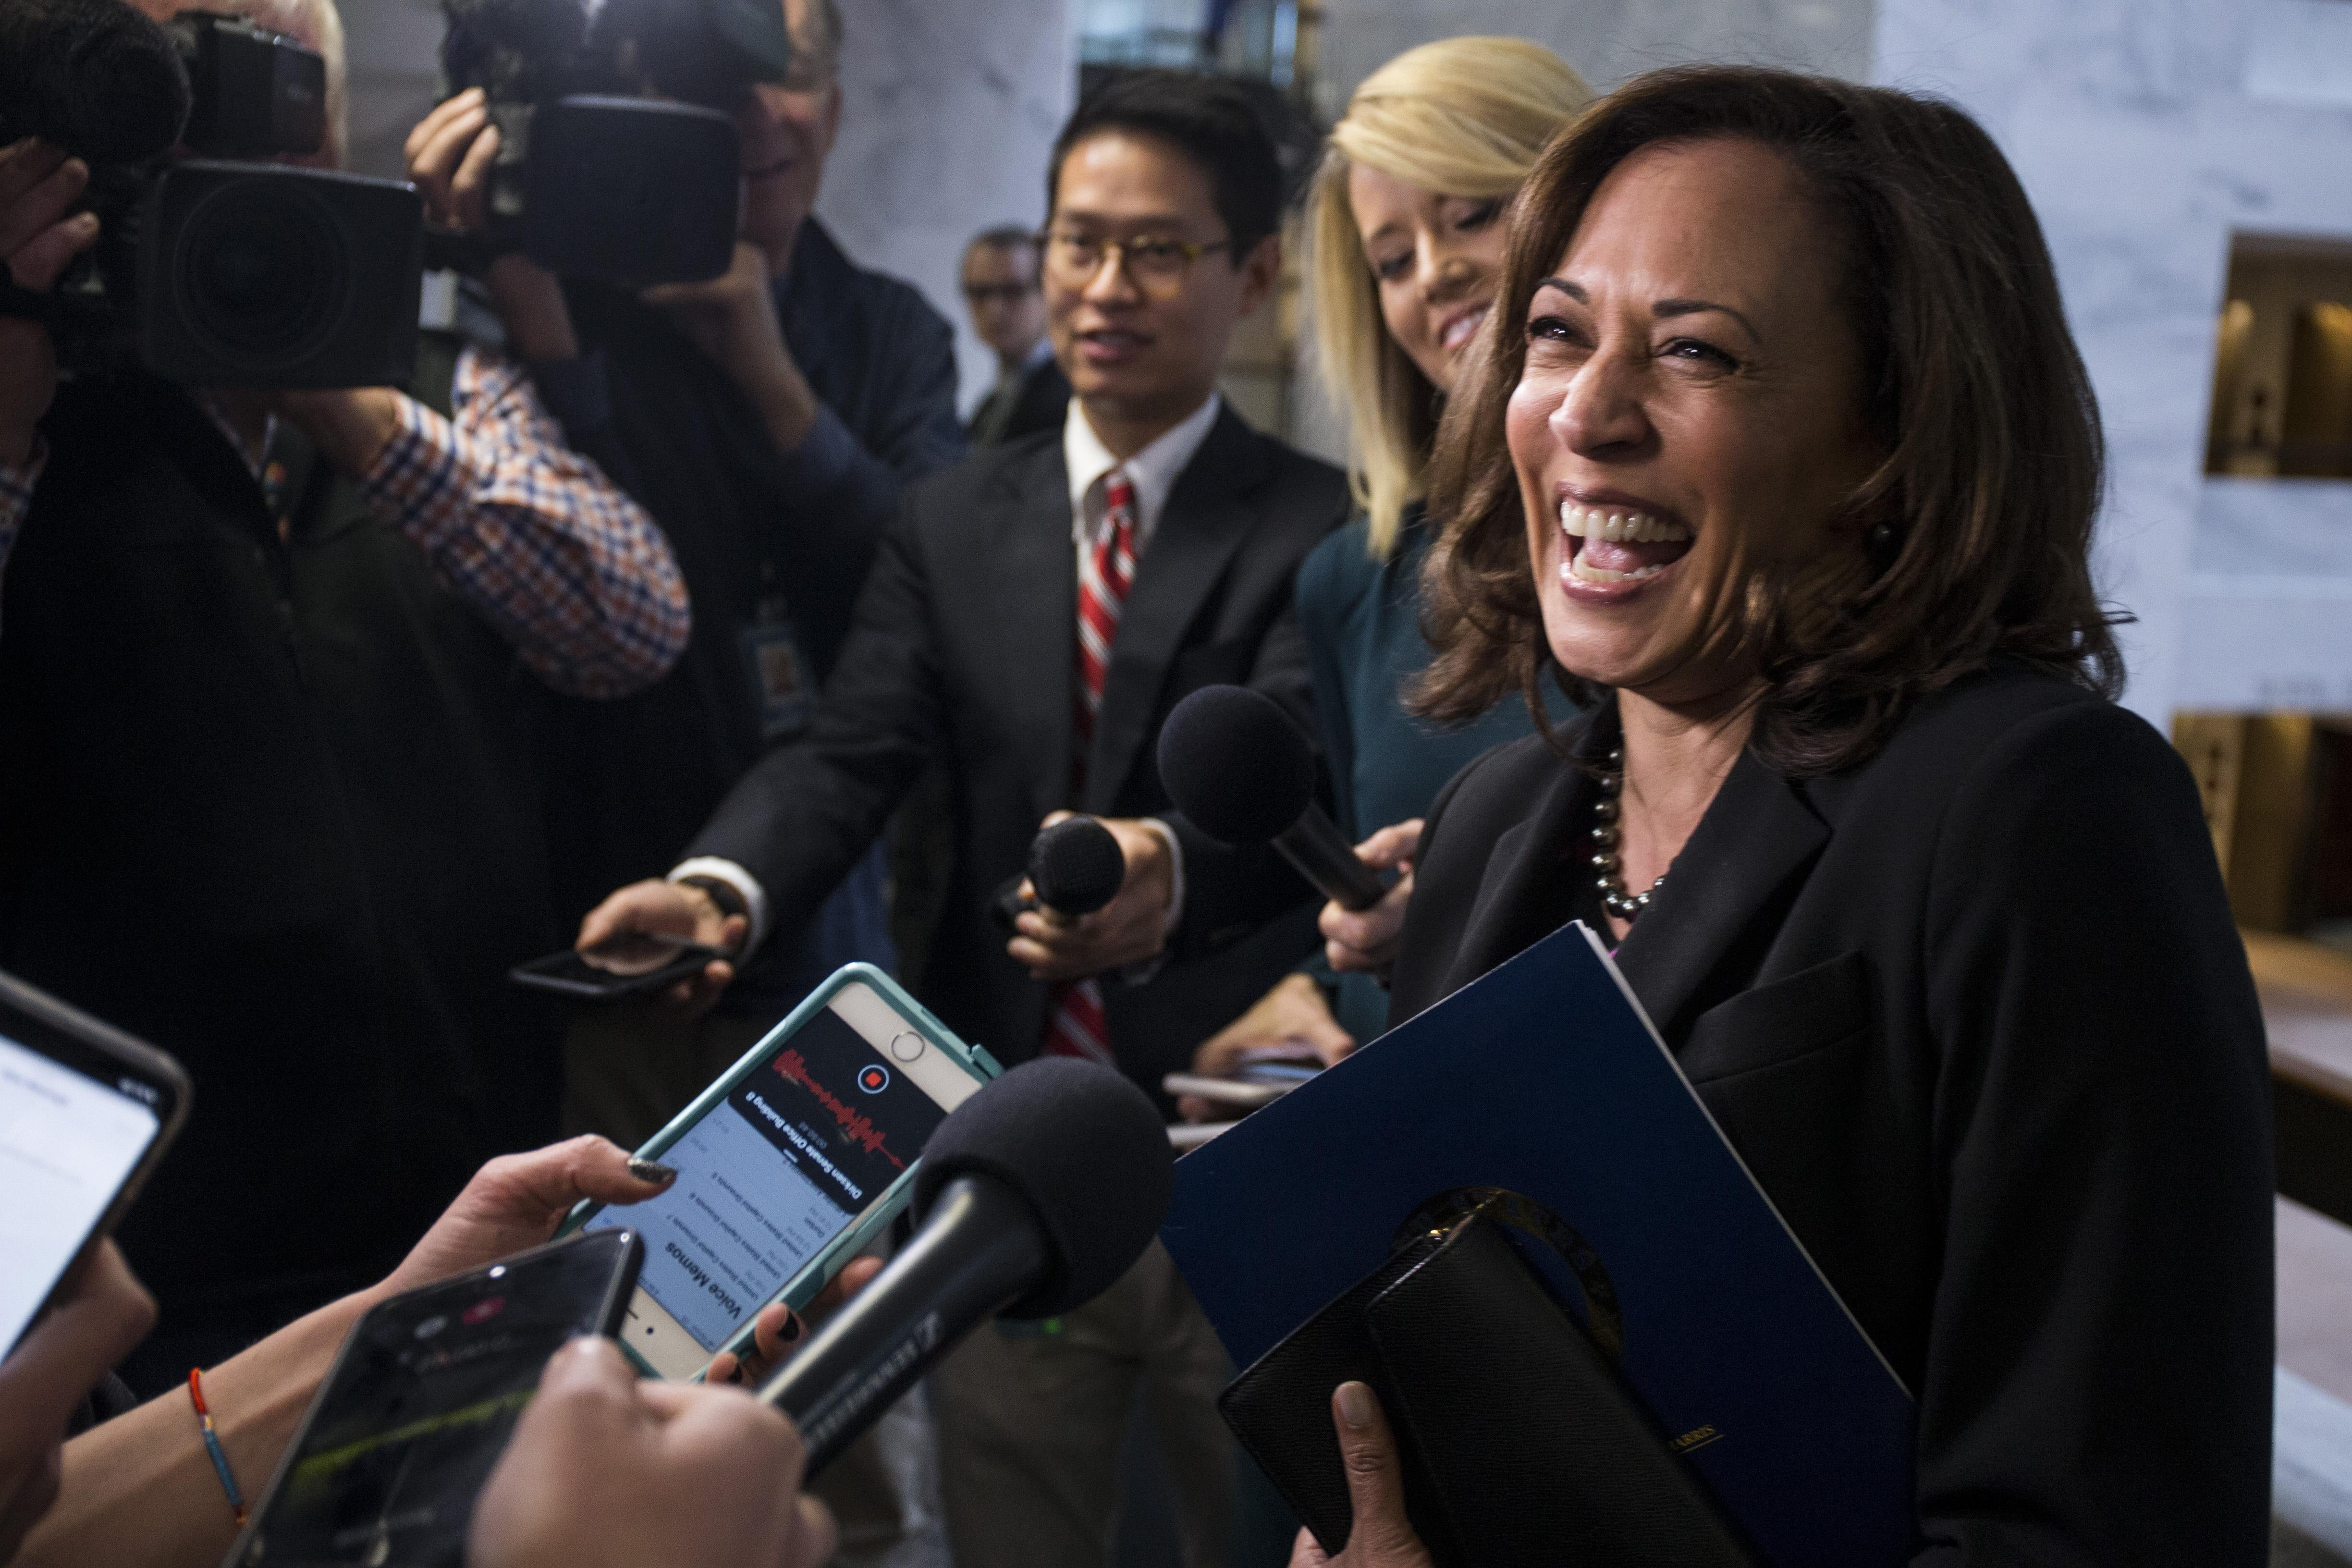 Sen. Kamala Harris (D-CA) speaks to reporters following a closed briefing on intelligence matters on Capitol Hill on December 4, 2018 in Washington, D.C.